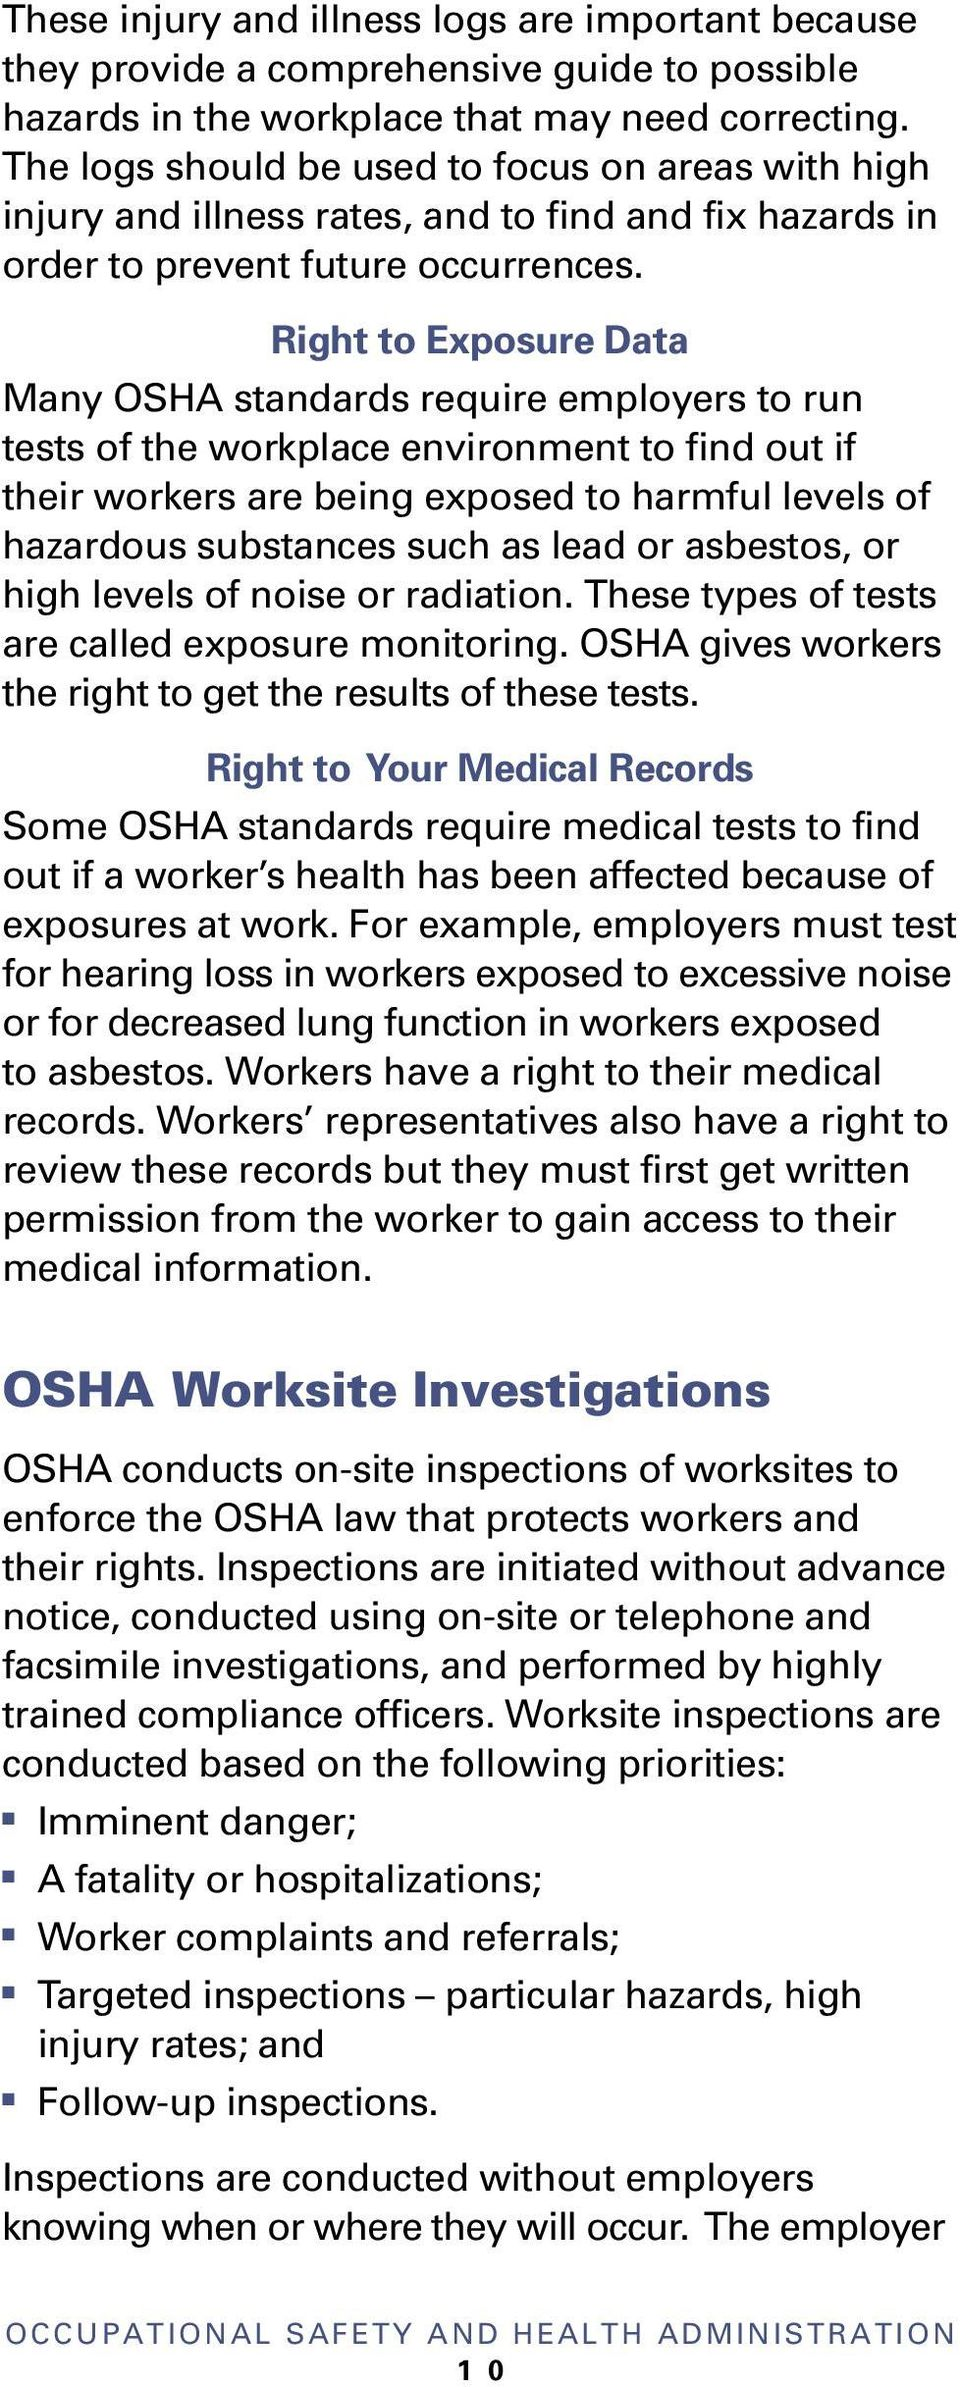 Right to Exposure Data May OSHA stadards require employers to ru tests of the workplace eviromet to fid out if their workers are beig exposed to harmful levels of hazardous substaces such as lead or